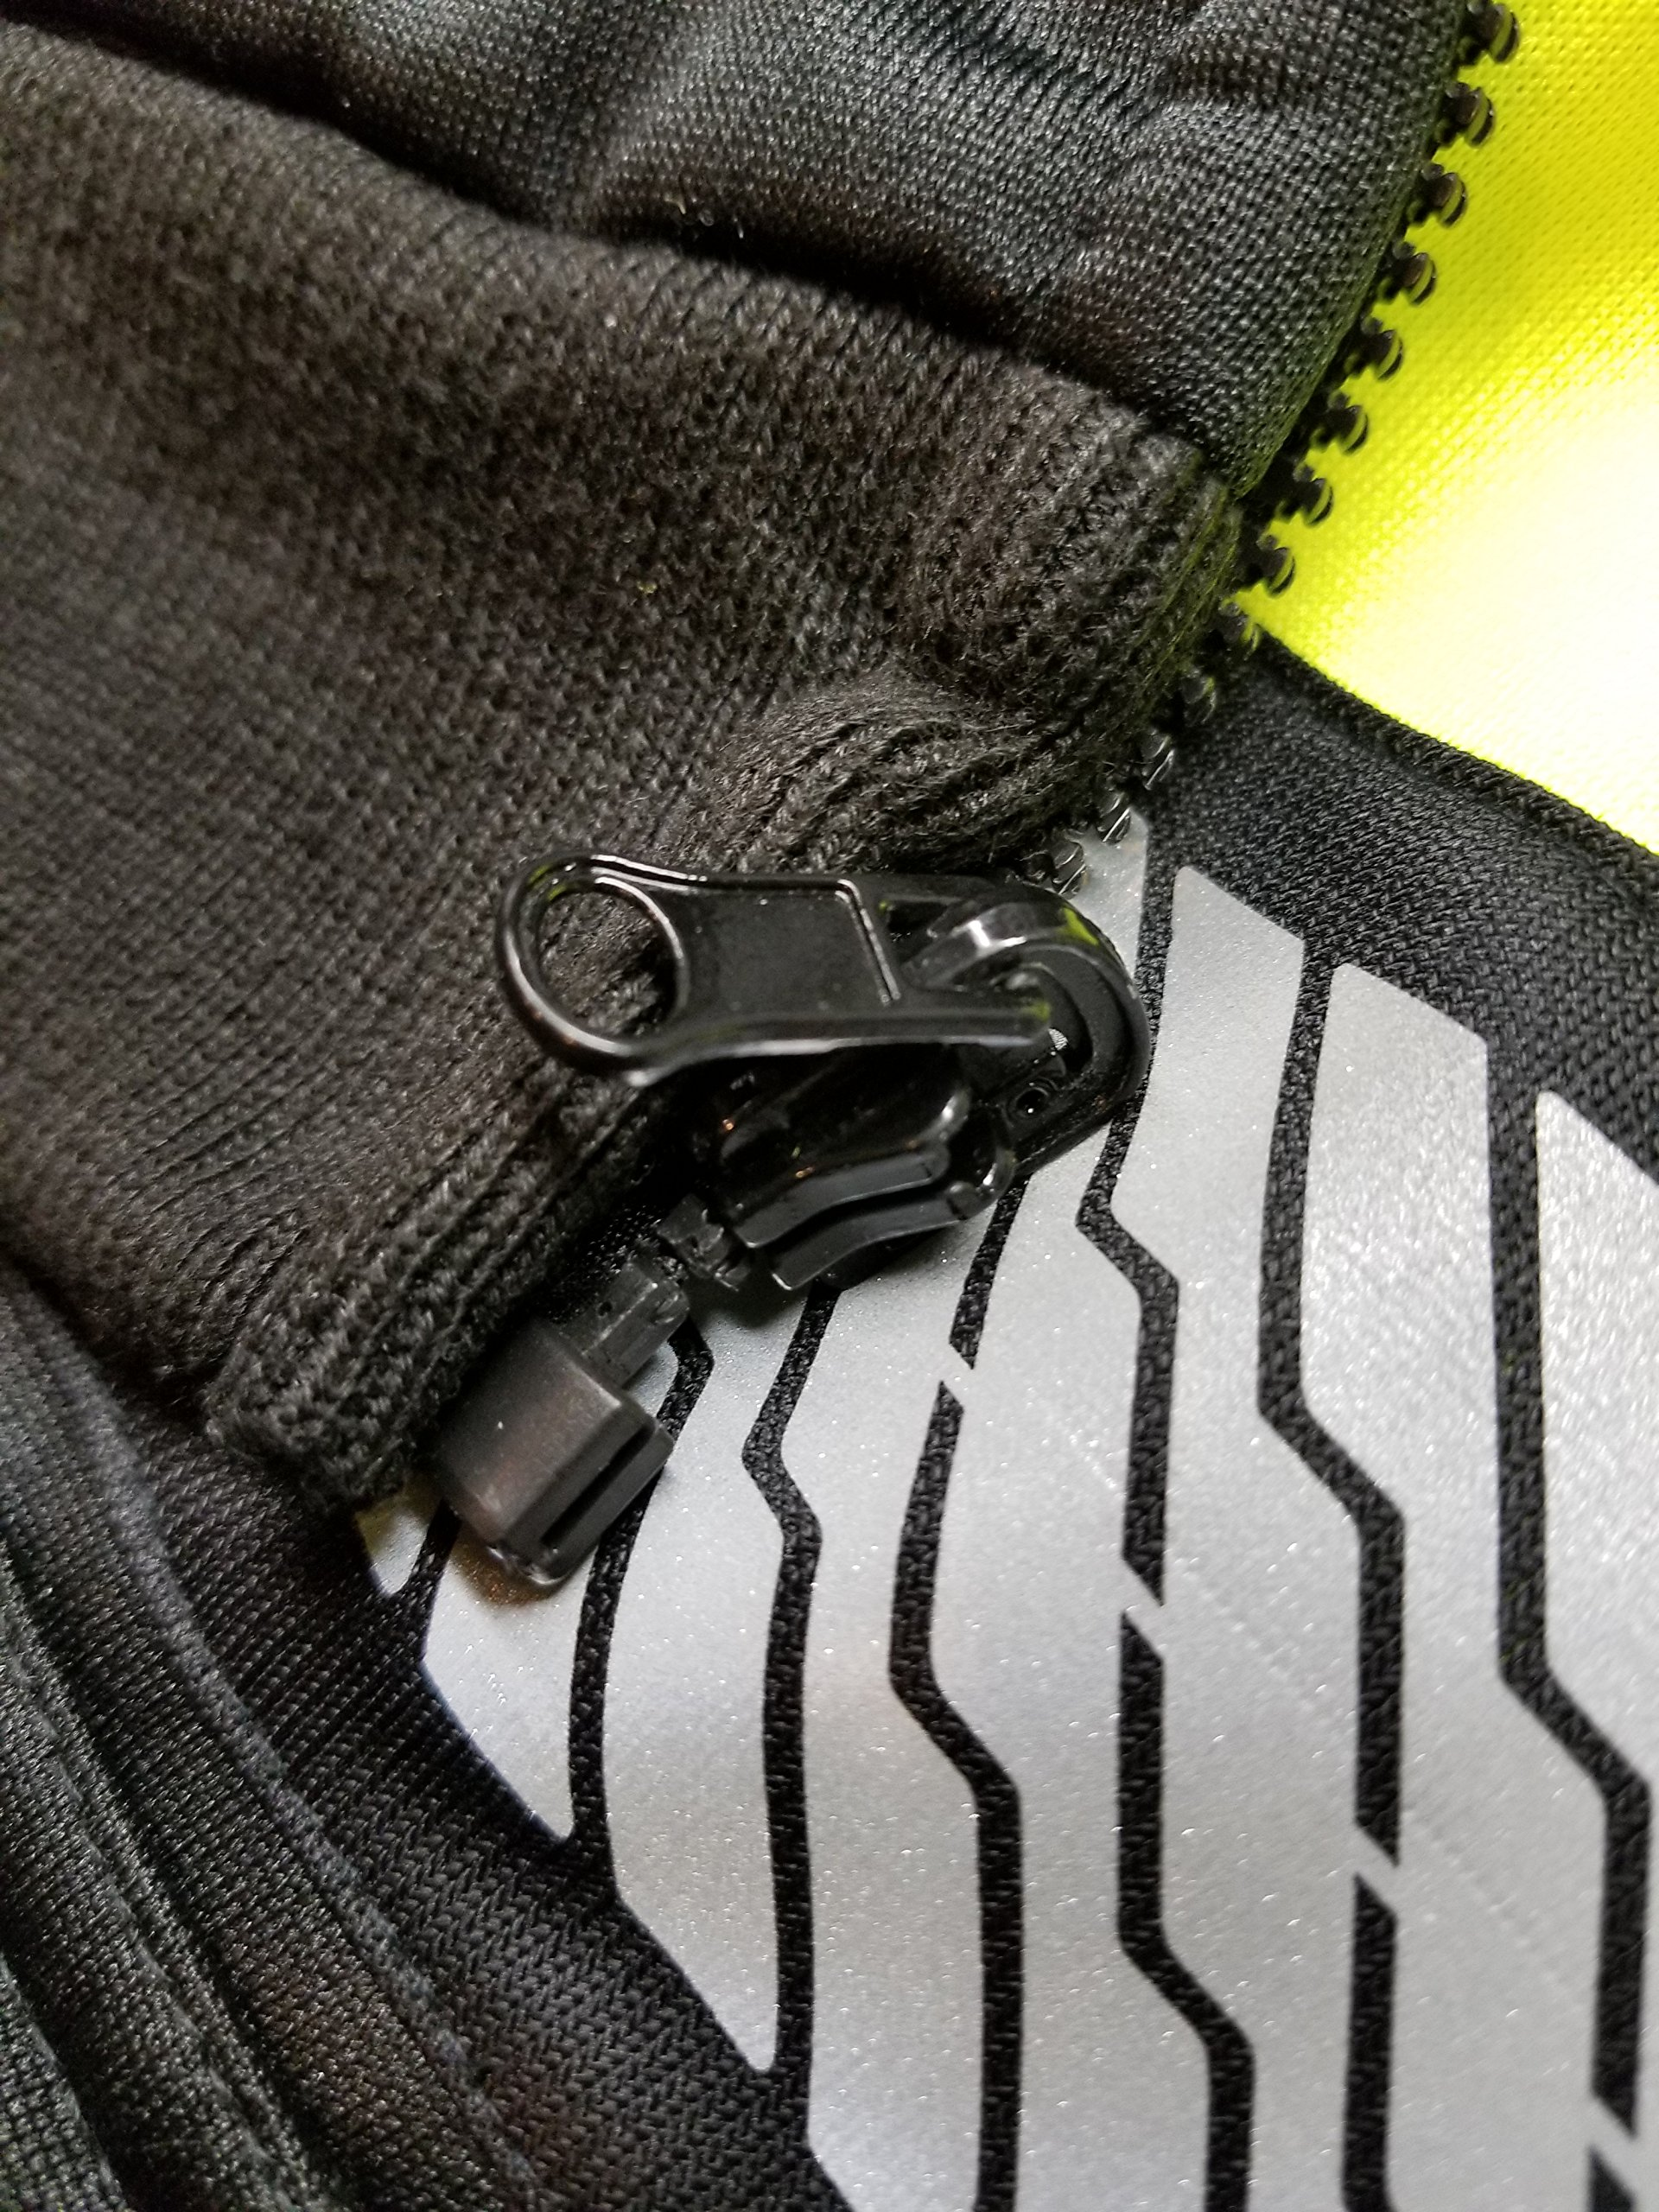 High Vis Lime Green and black Class 3 Heavyweight Premium ONYX Hoodie Sweatshirt with black trim and reflective tape (XXL) by GSS SAFETY (Image #4)